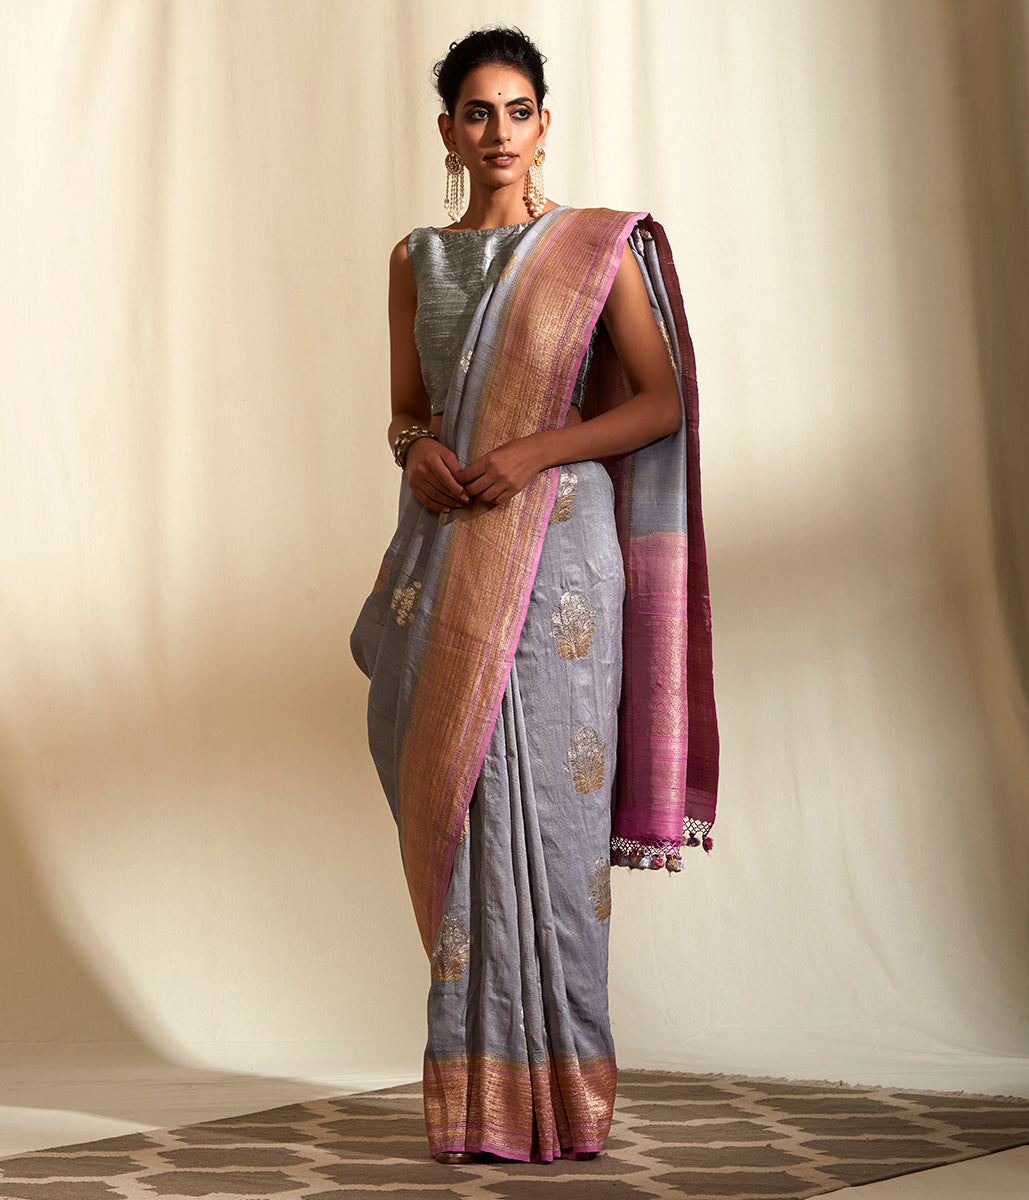 Handwoven Tusser Georegtte saree in grey with pink border and kadhwa booti